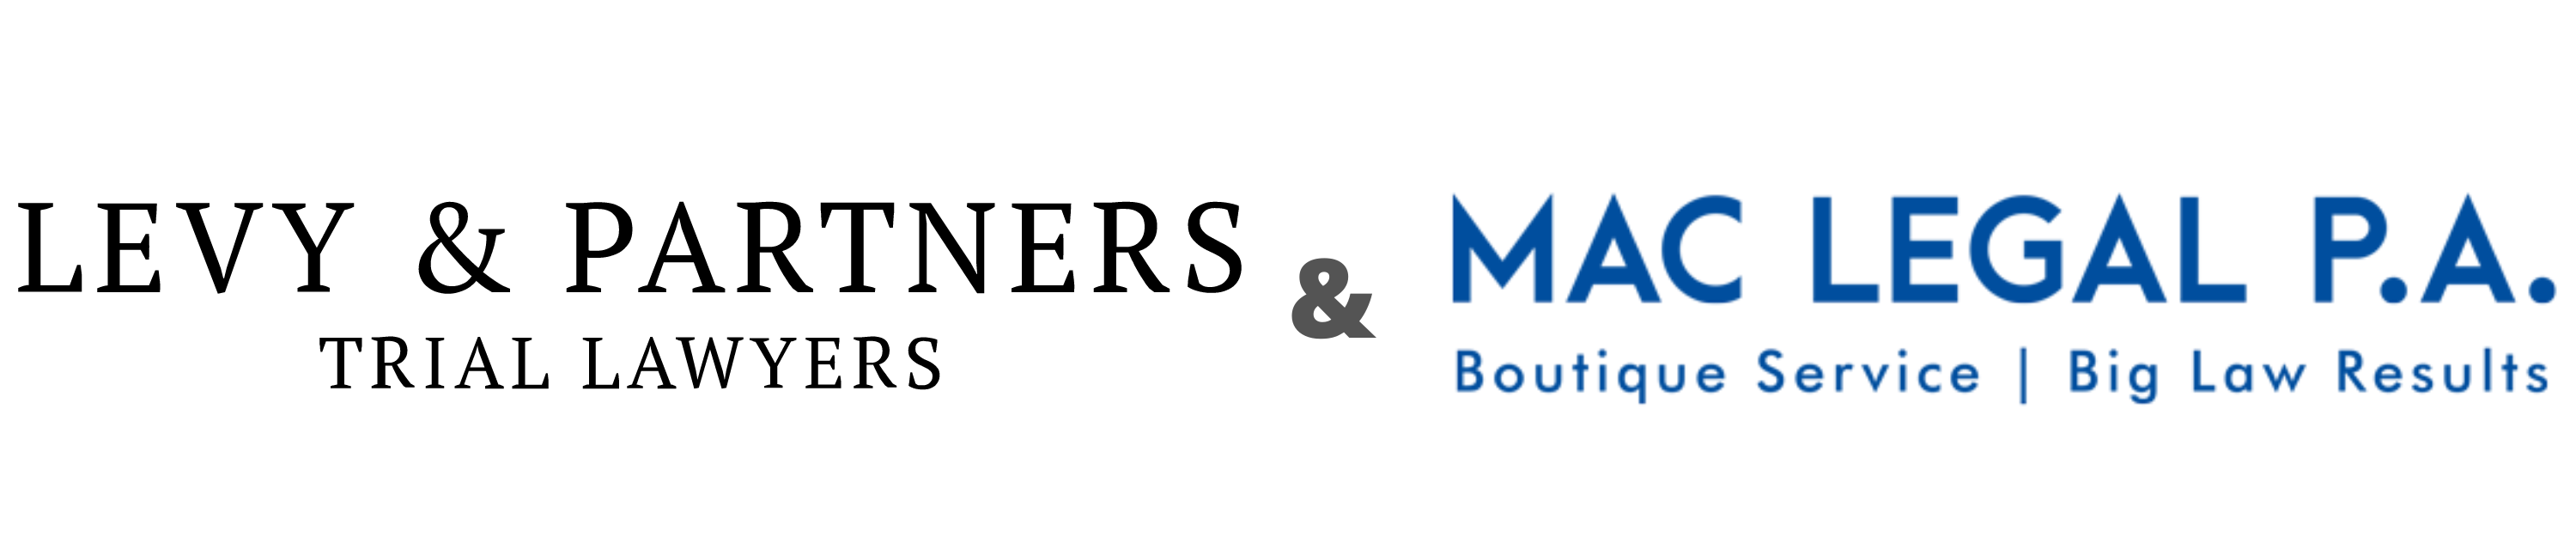 Levy & Partners